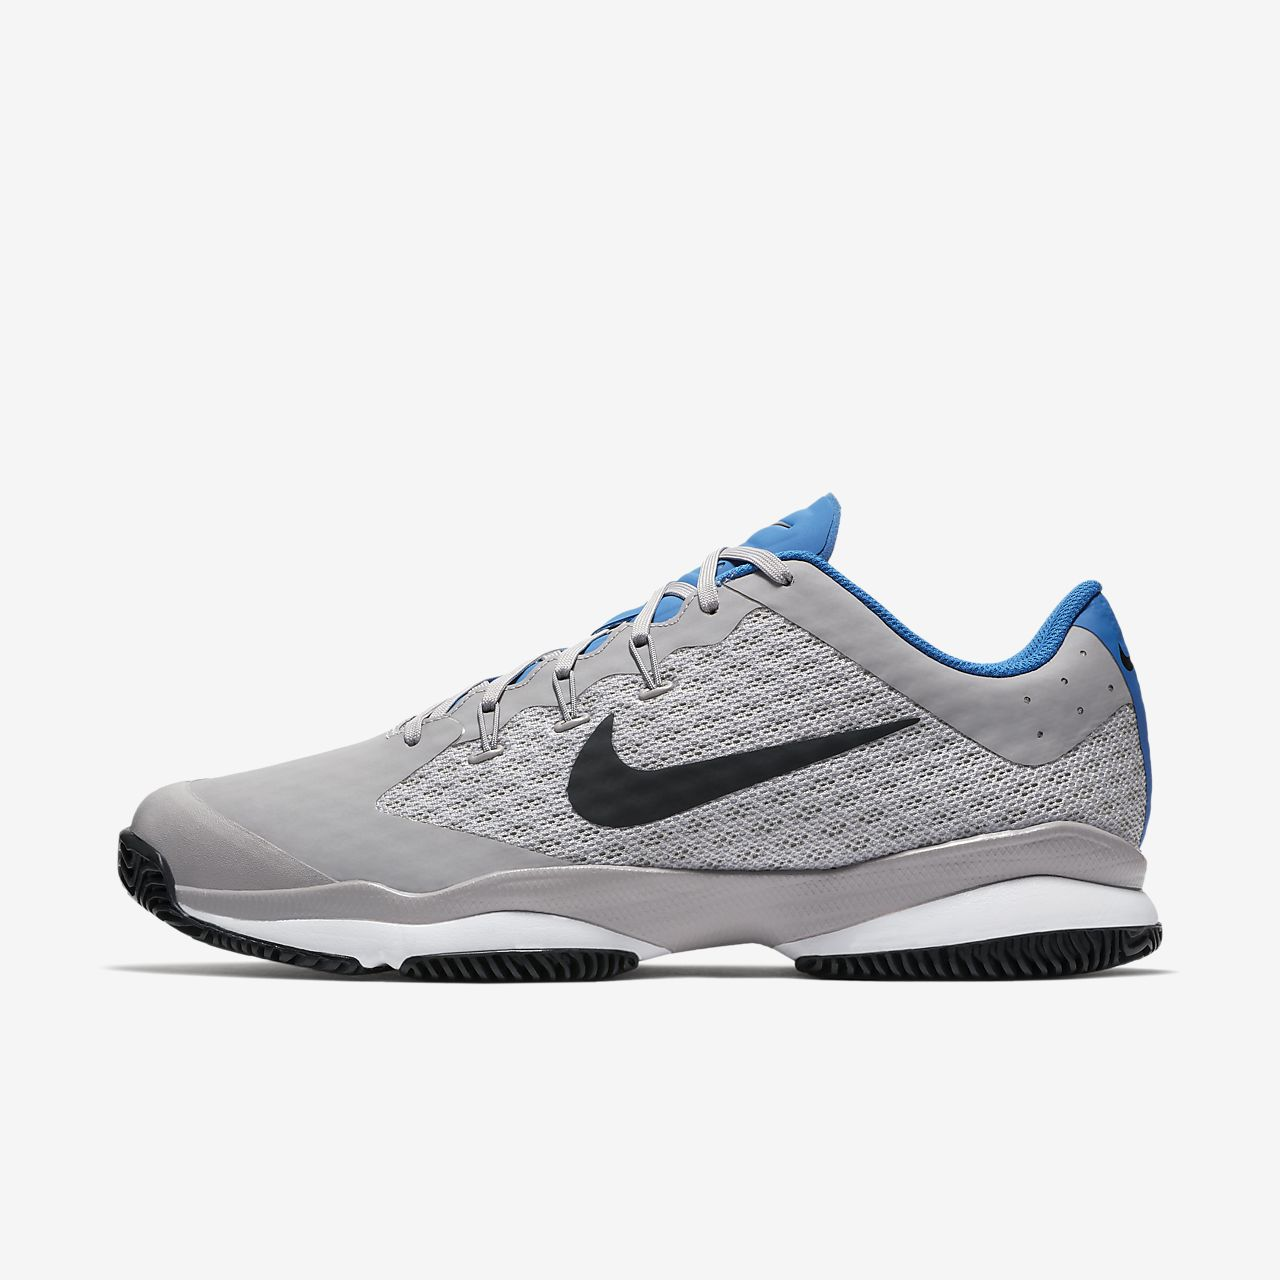 ... NikeCourt Air Zoom Ultra Men's Tennis Shoe